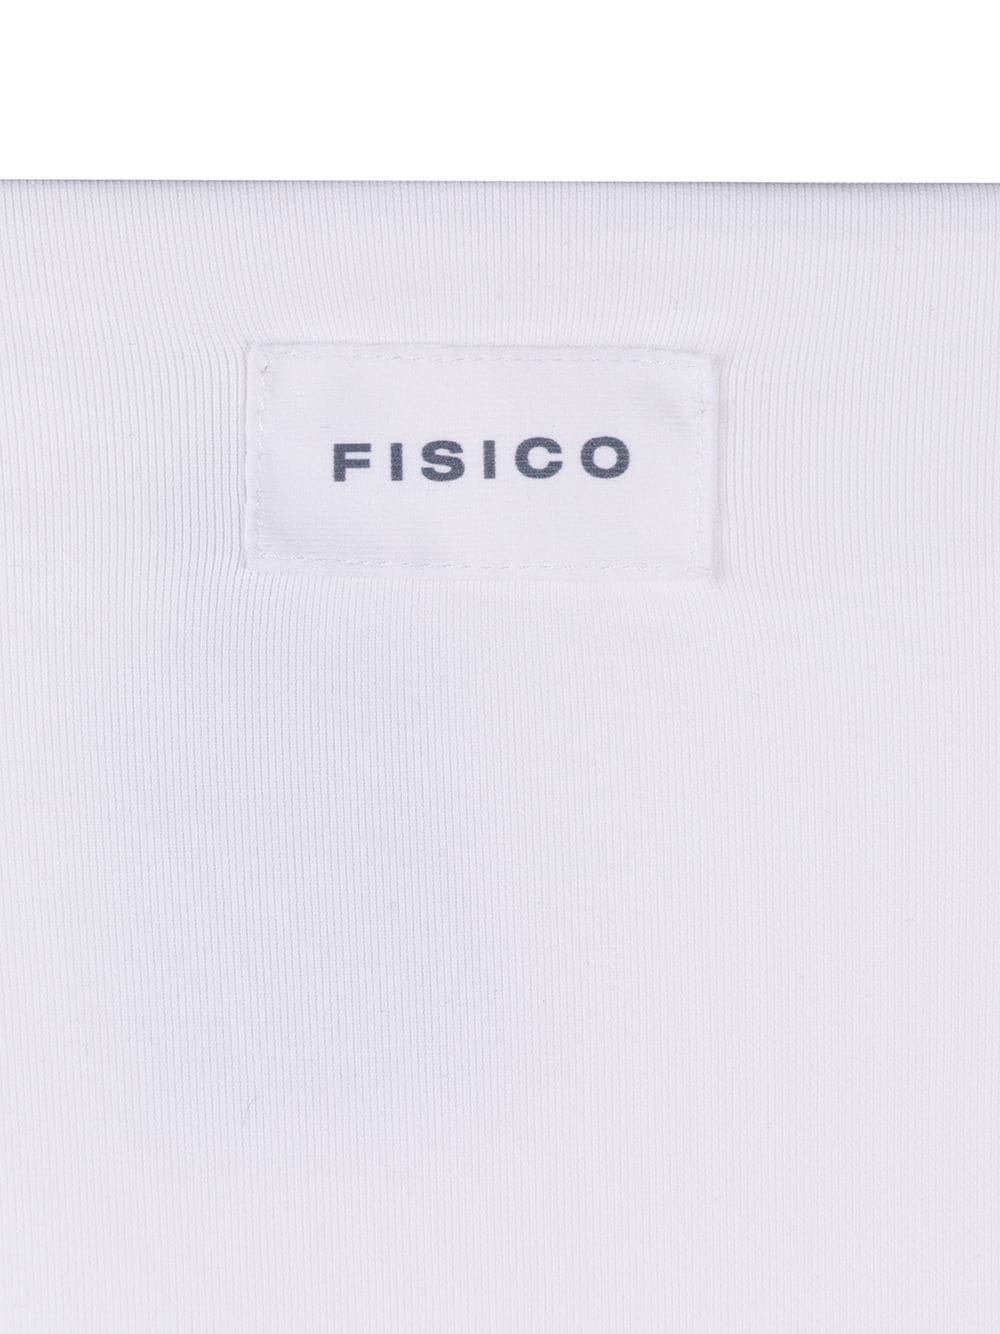 Picture of Fisico   Adjustable Bottom